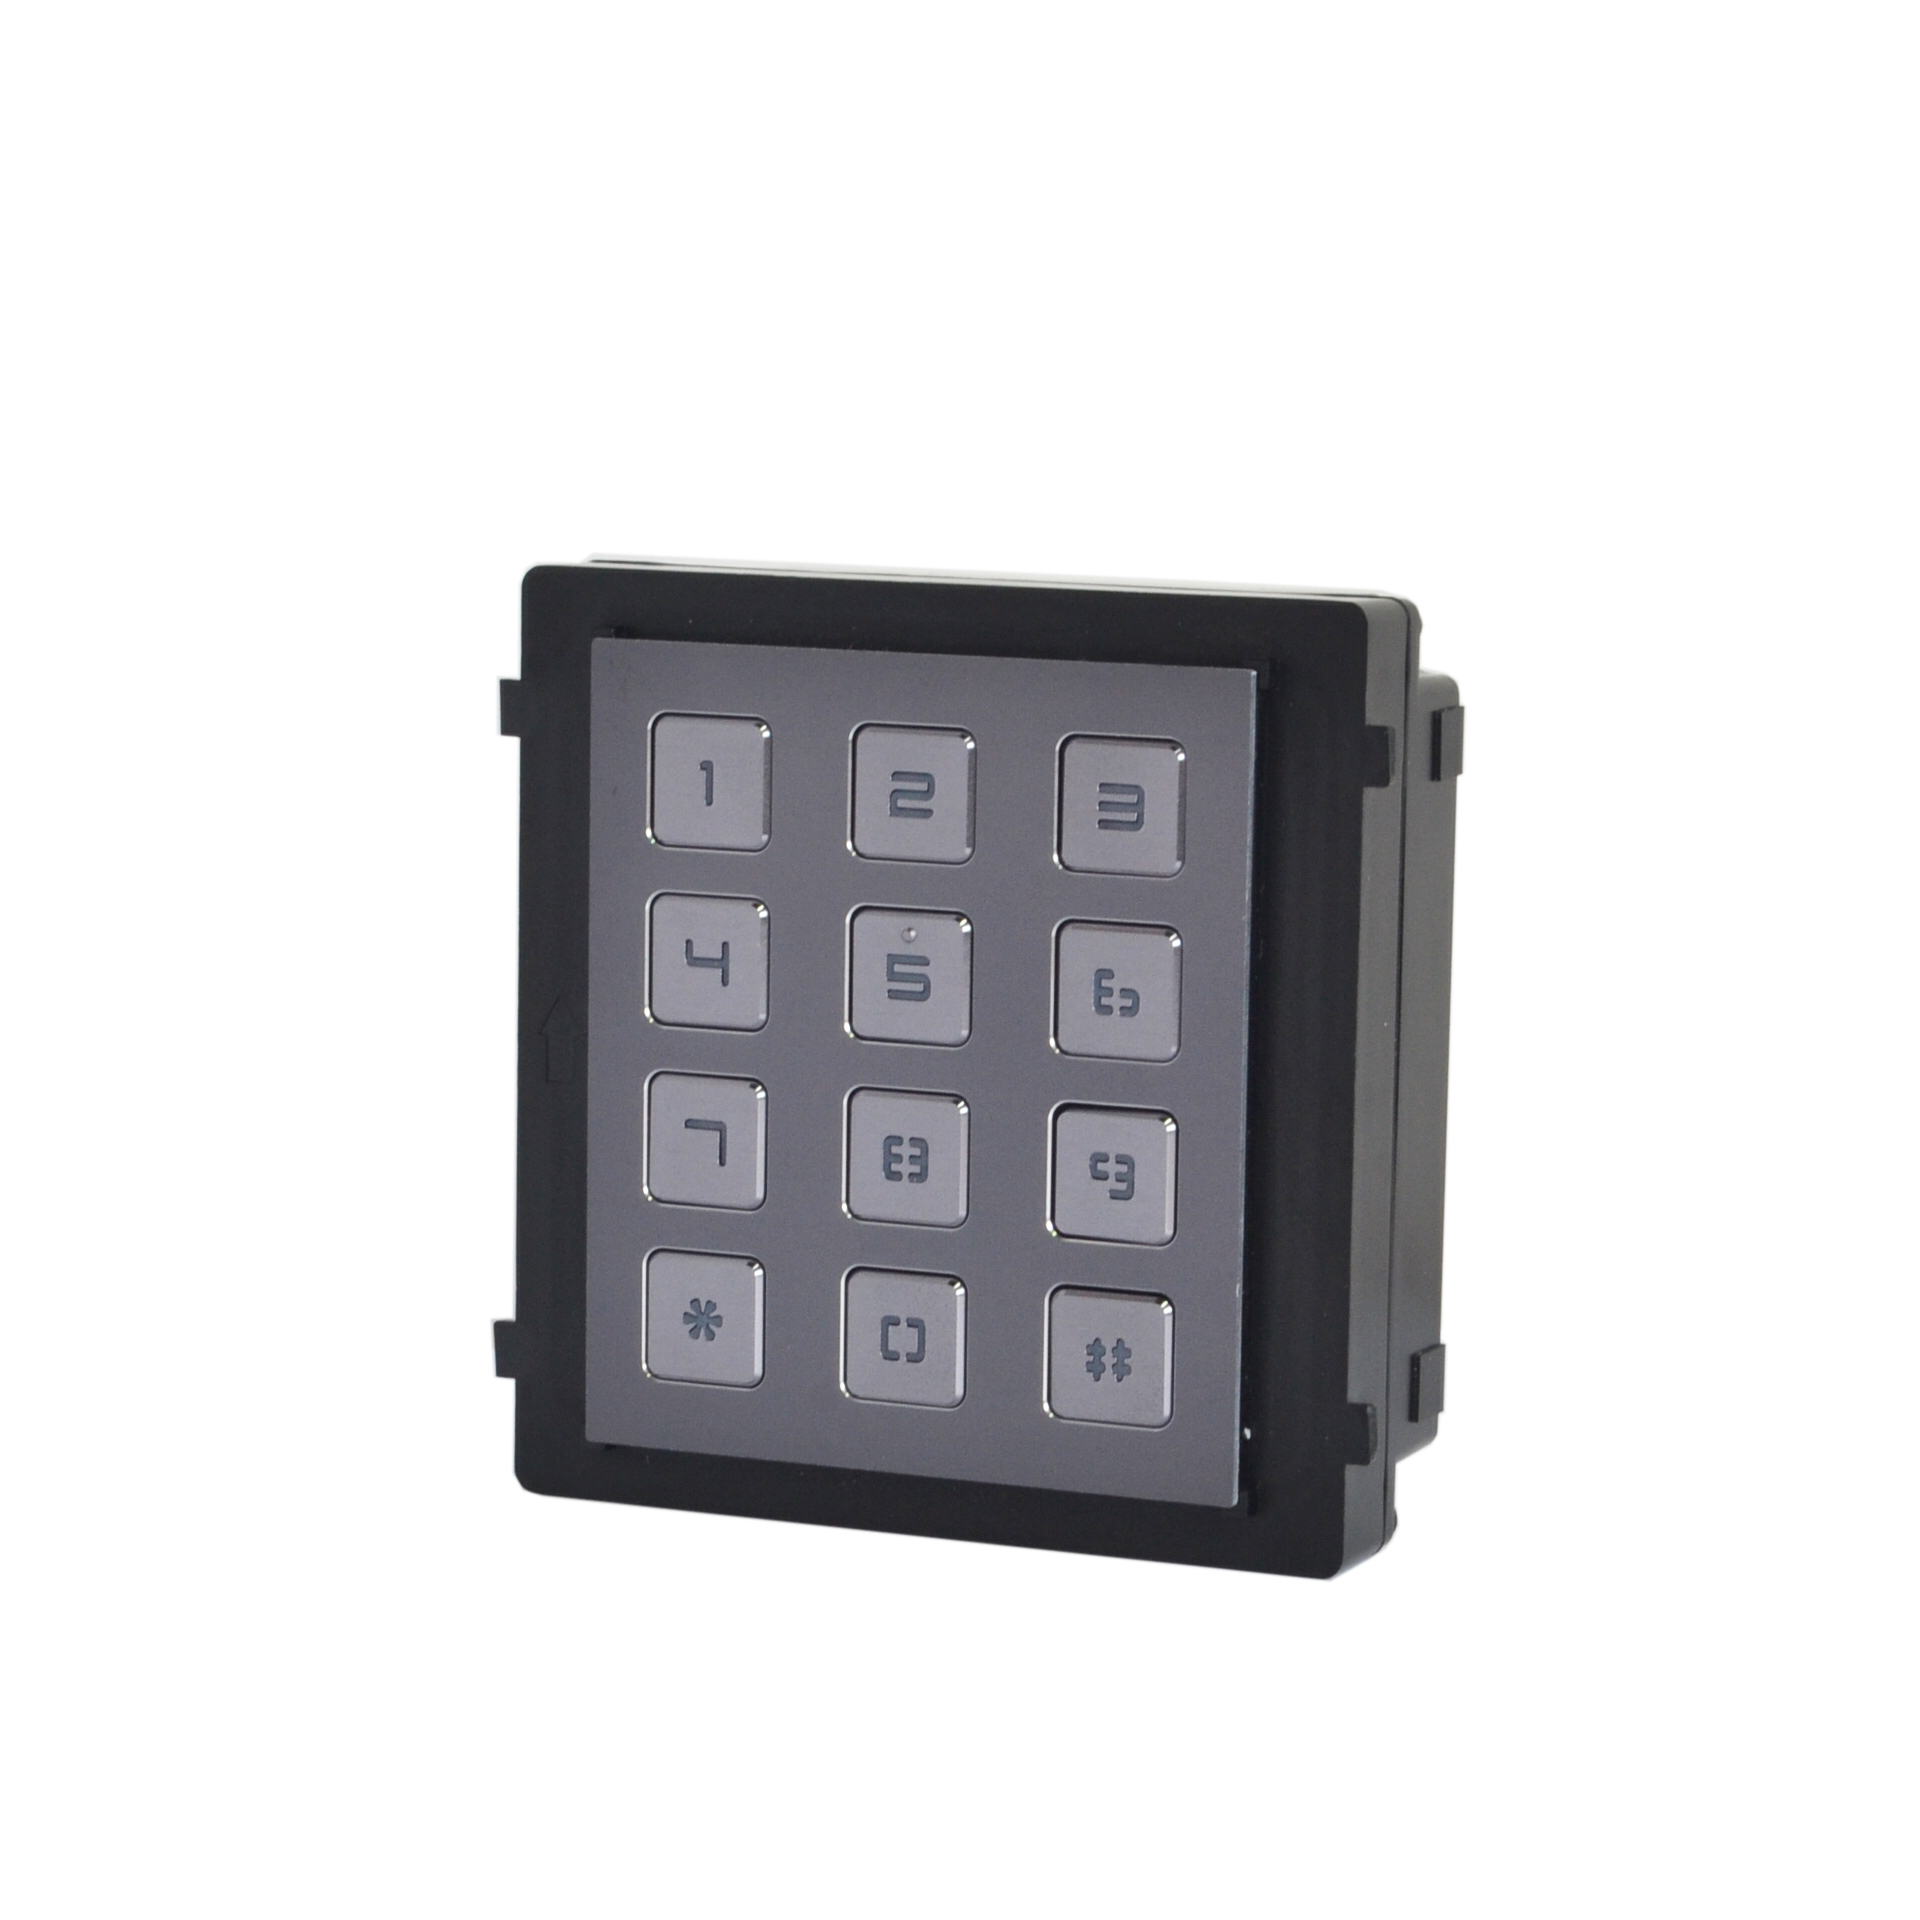 DS-KD-KP Keyboard Module For DS-KD8003-IME1, IP Doorbell Parts,video Intercom Parts,Access Control Parts,doorbell Parts